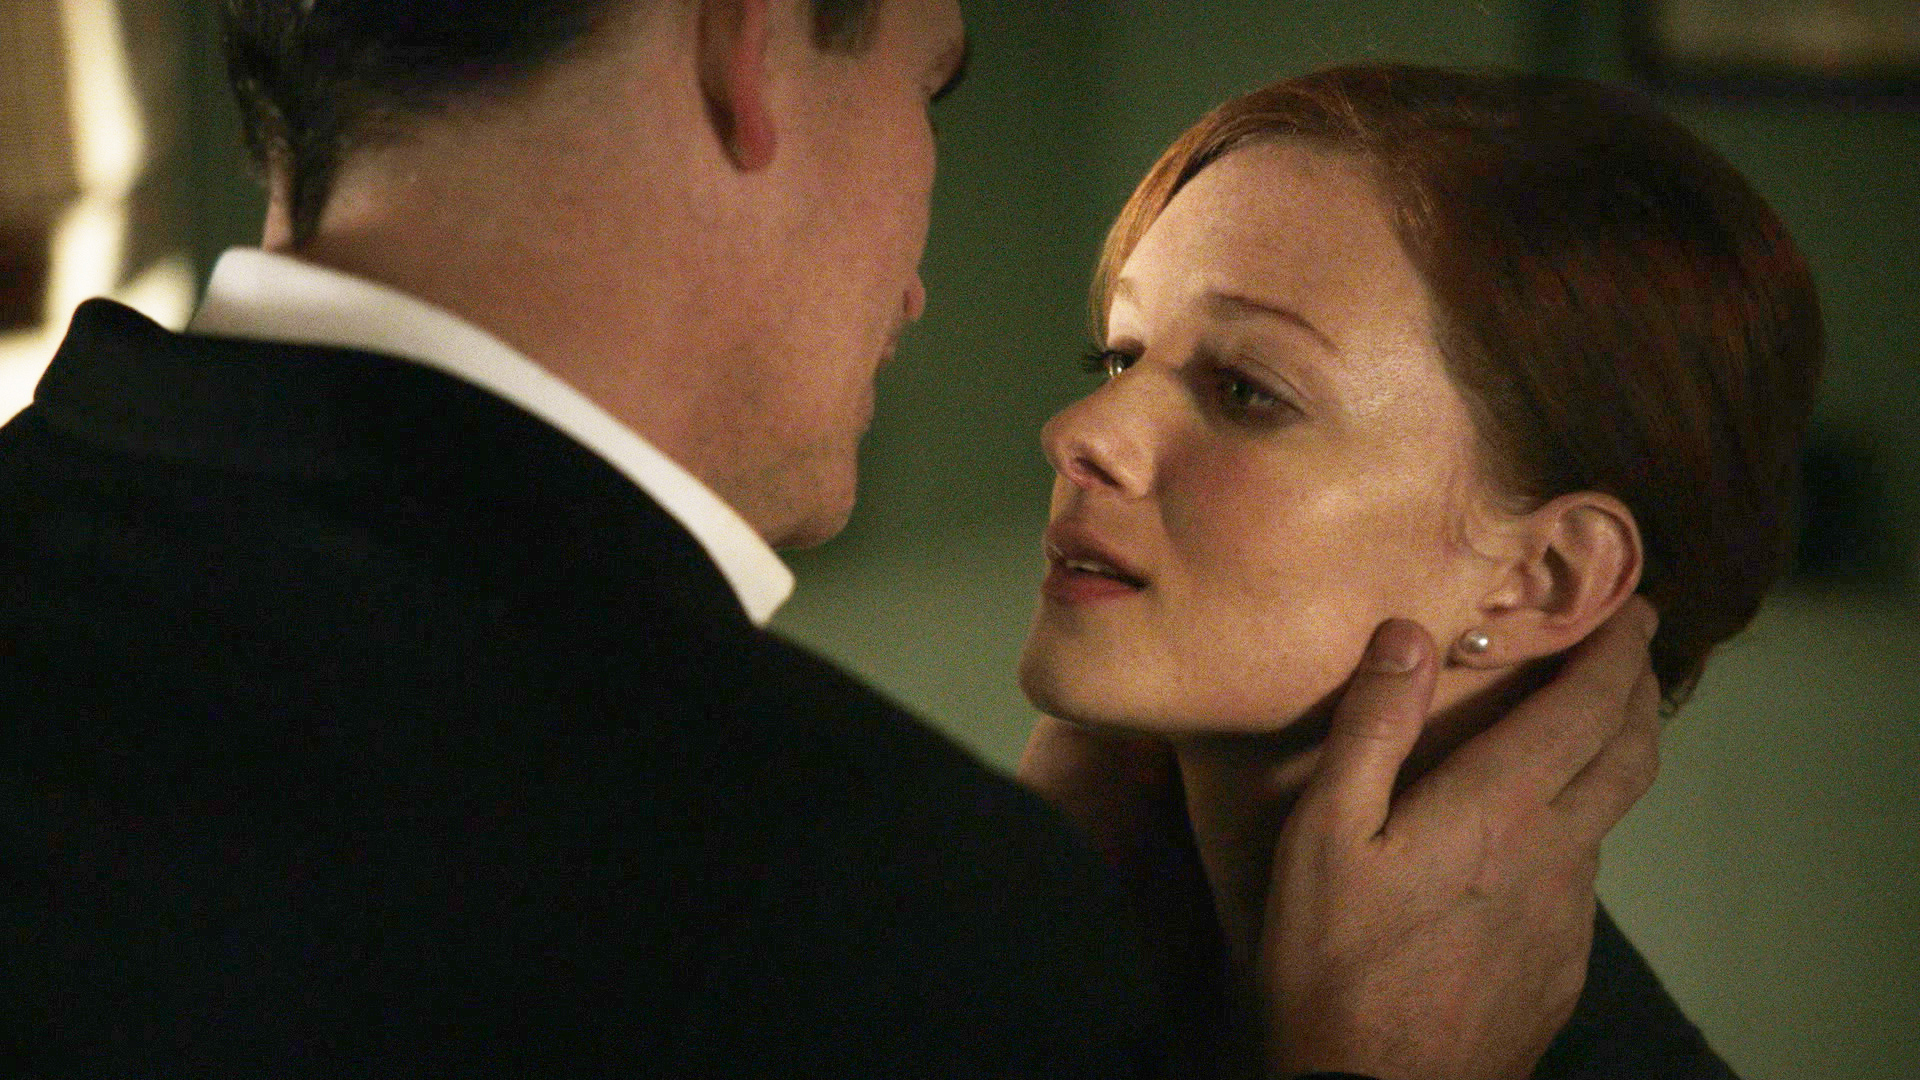 20. Reese gets some action - Person Of Interest